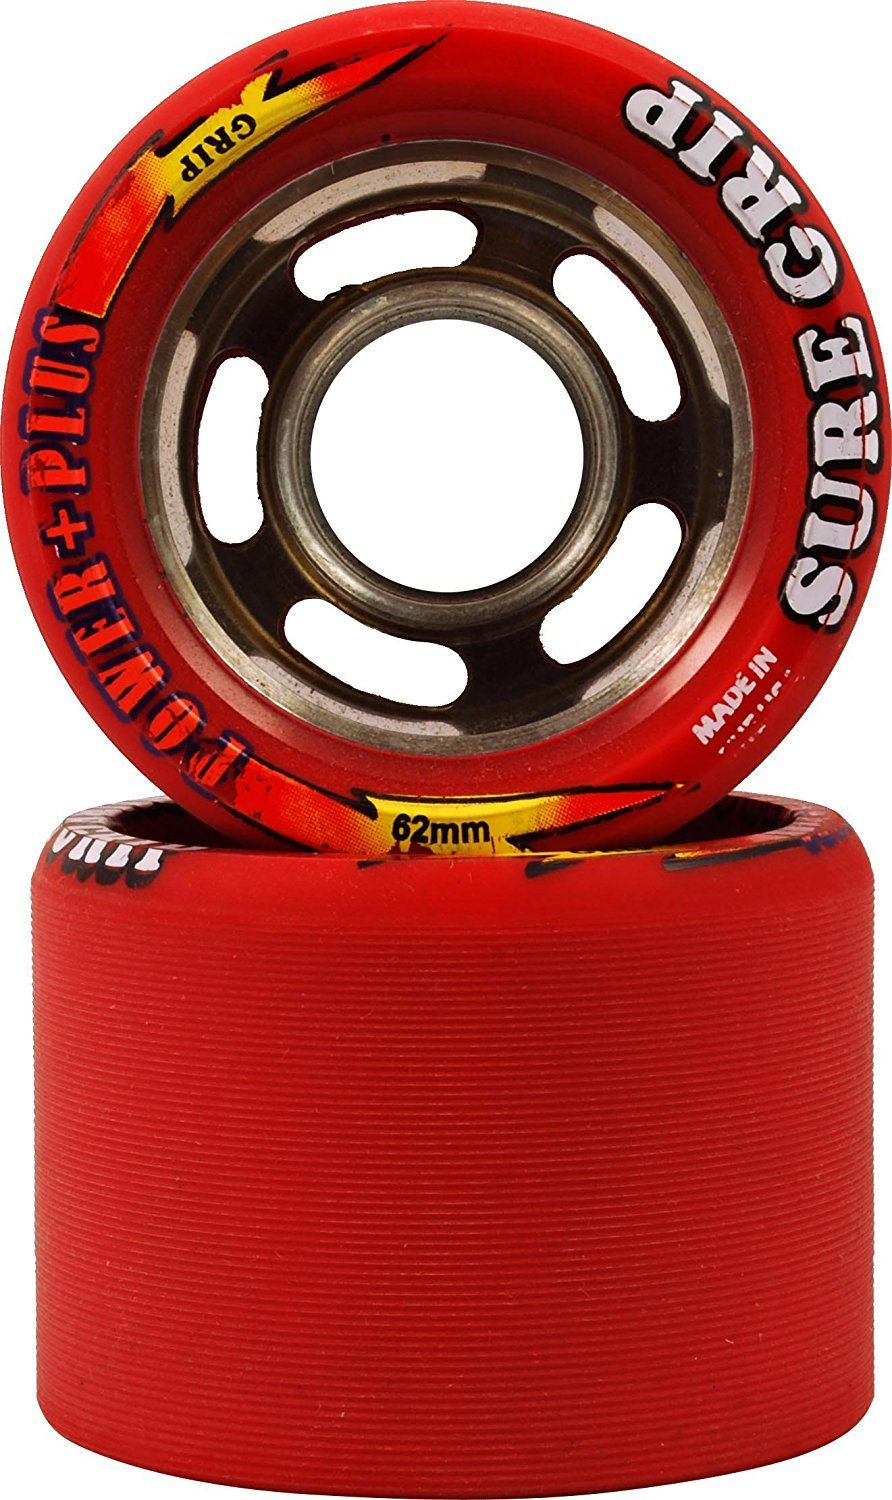 Sure Grip Red 93A Power Plus Quad Indoor Roller Derby Speed Skate Wheels 8 Pack